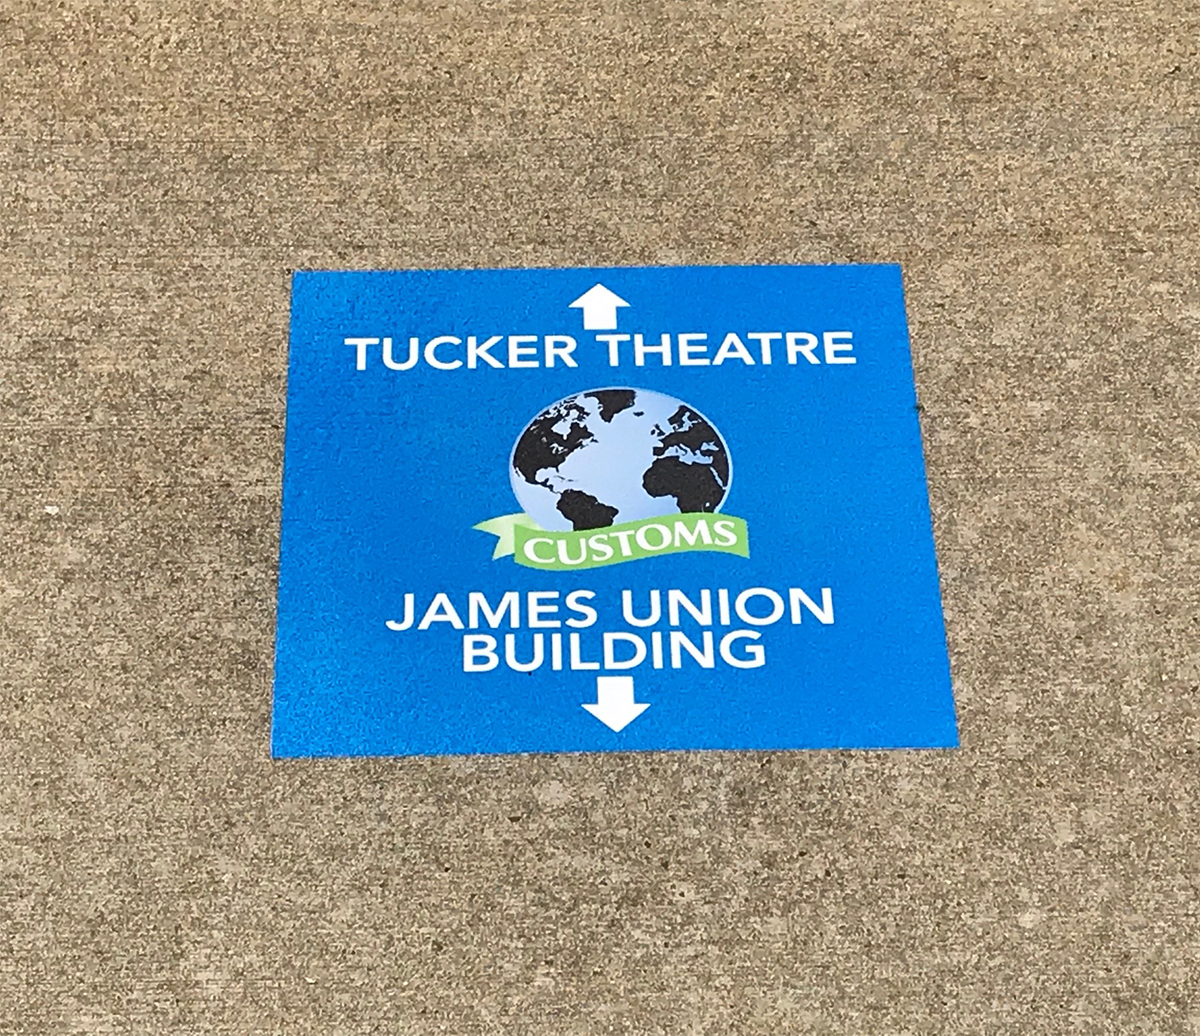 New sidewalk stickers will greet new incoming freshmen and transfer students attending CUSTOMS orientation this spring and summer, and help them find building locations. The first two days of freshman orientation will be Thursday and Friday, May 16-17, and continue for two months. (MTSU photo by News and Media Relations)